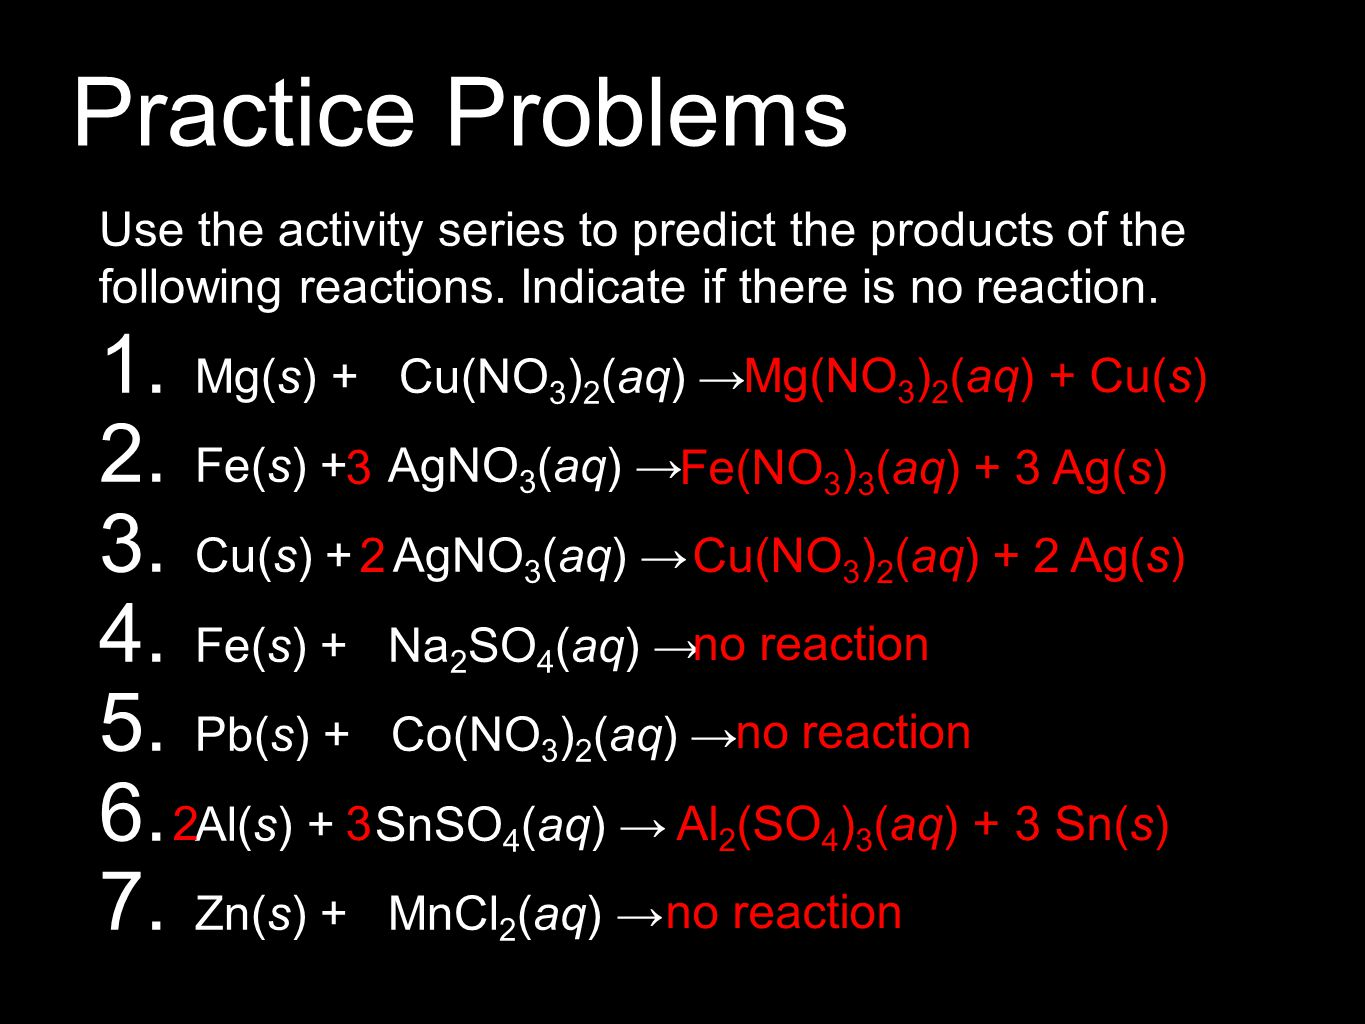 Practice Problems Use the activity series to predict the products of the following reactions. Indicate if there is no reaction.